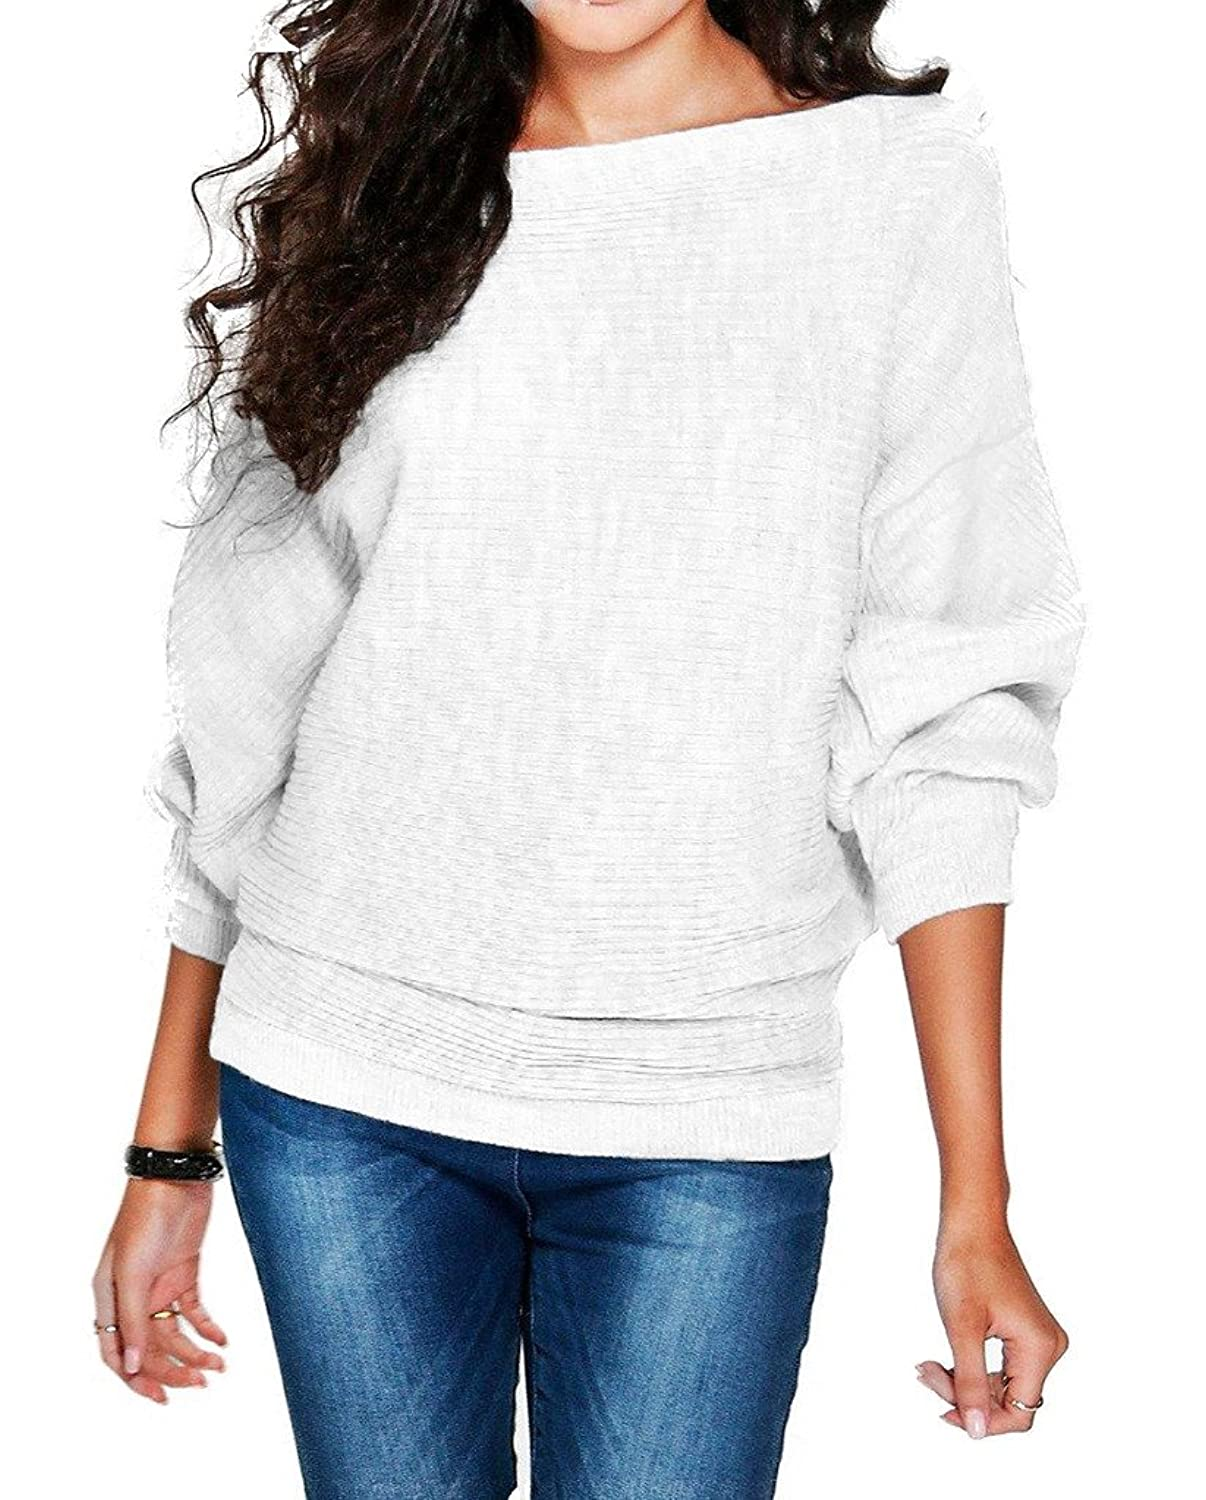 Bigood Women Ladies Fall Chic Loose Batwing Sleeve Kitted Tops Pullover